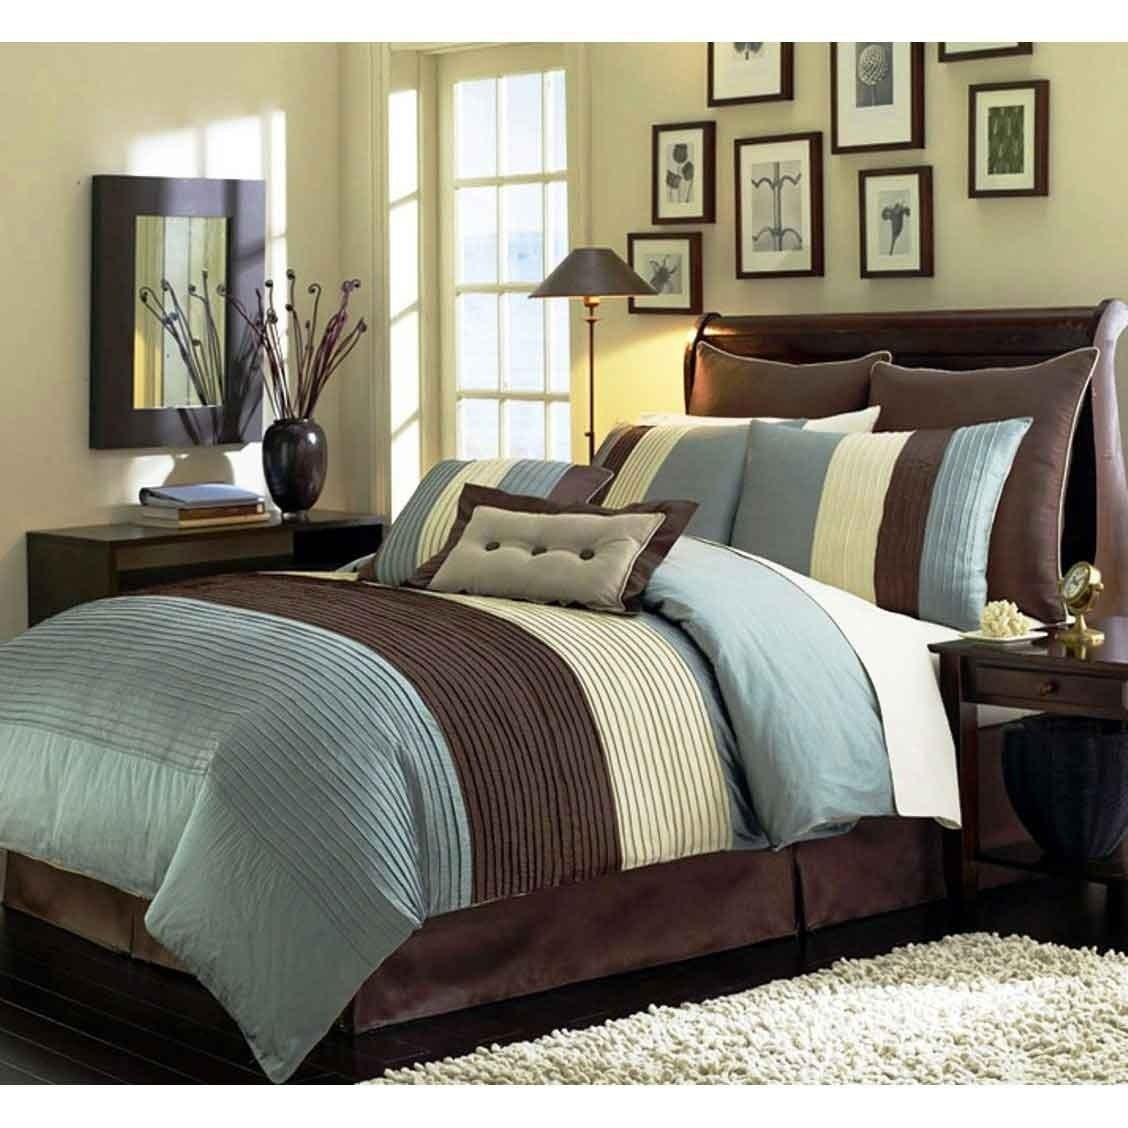 10 Fantastic Brown And Blue Bedroom Ideas blue and brown bedrooms decosee 2021